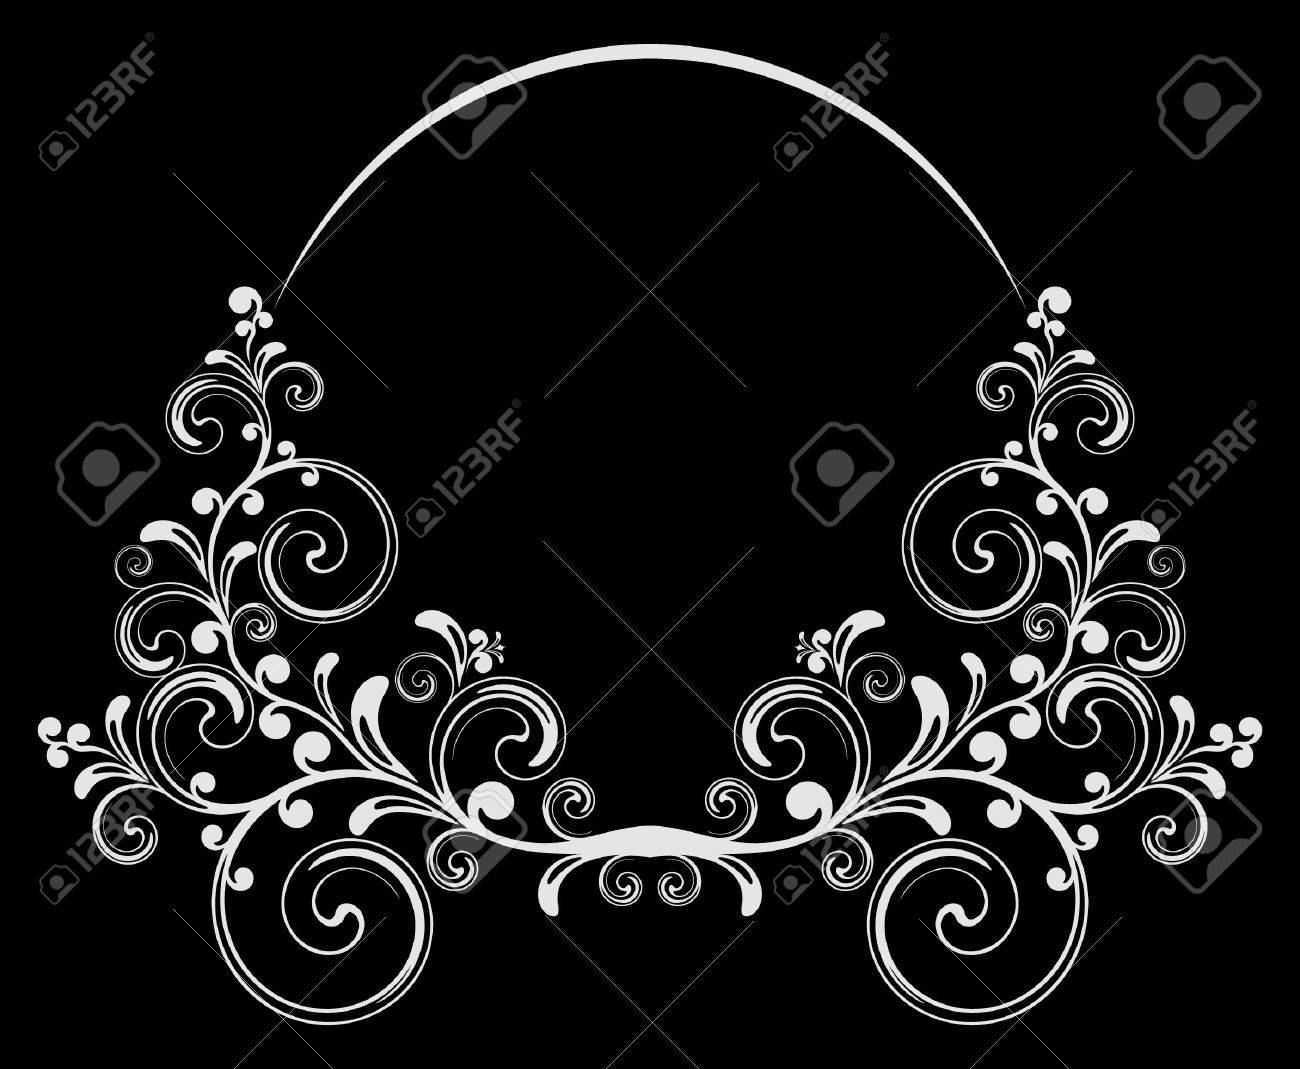 Black-and-white background. - 9929726